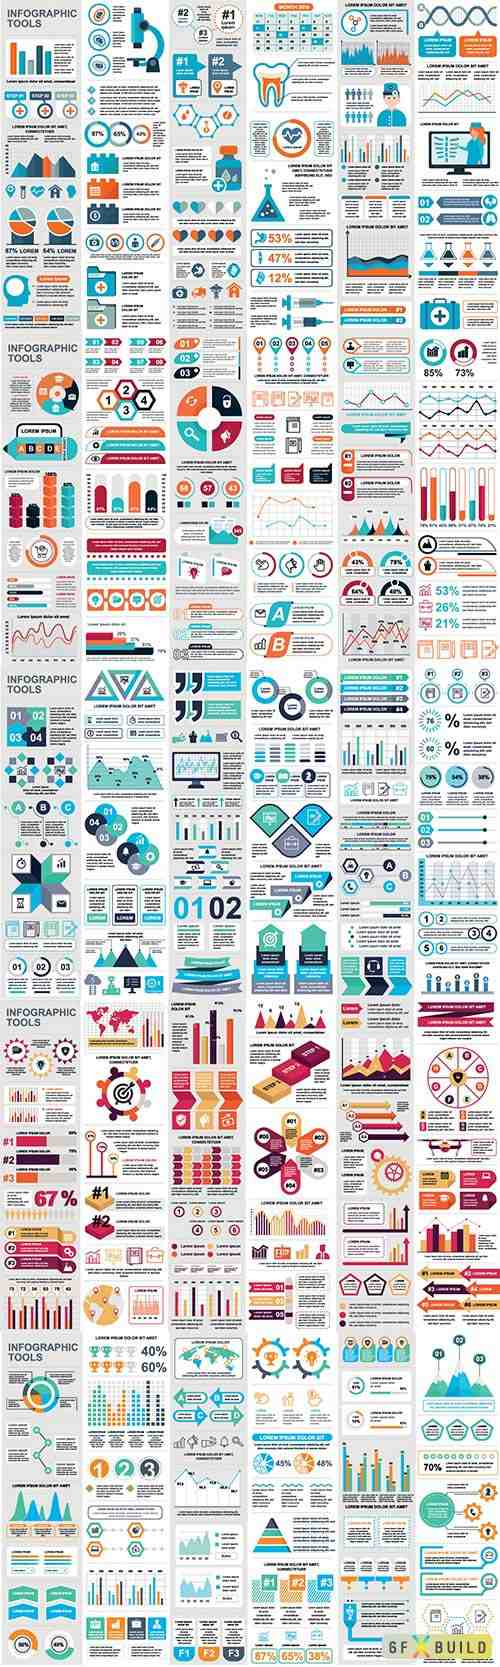 Infographic elements data visualization vector # 4